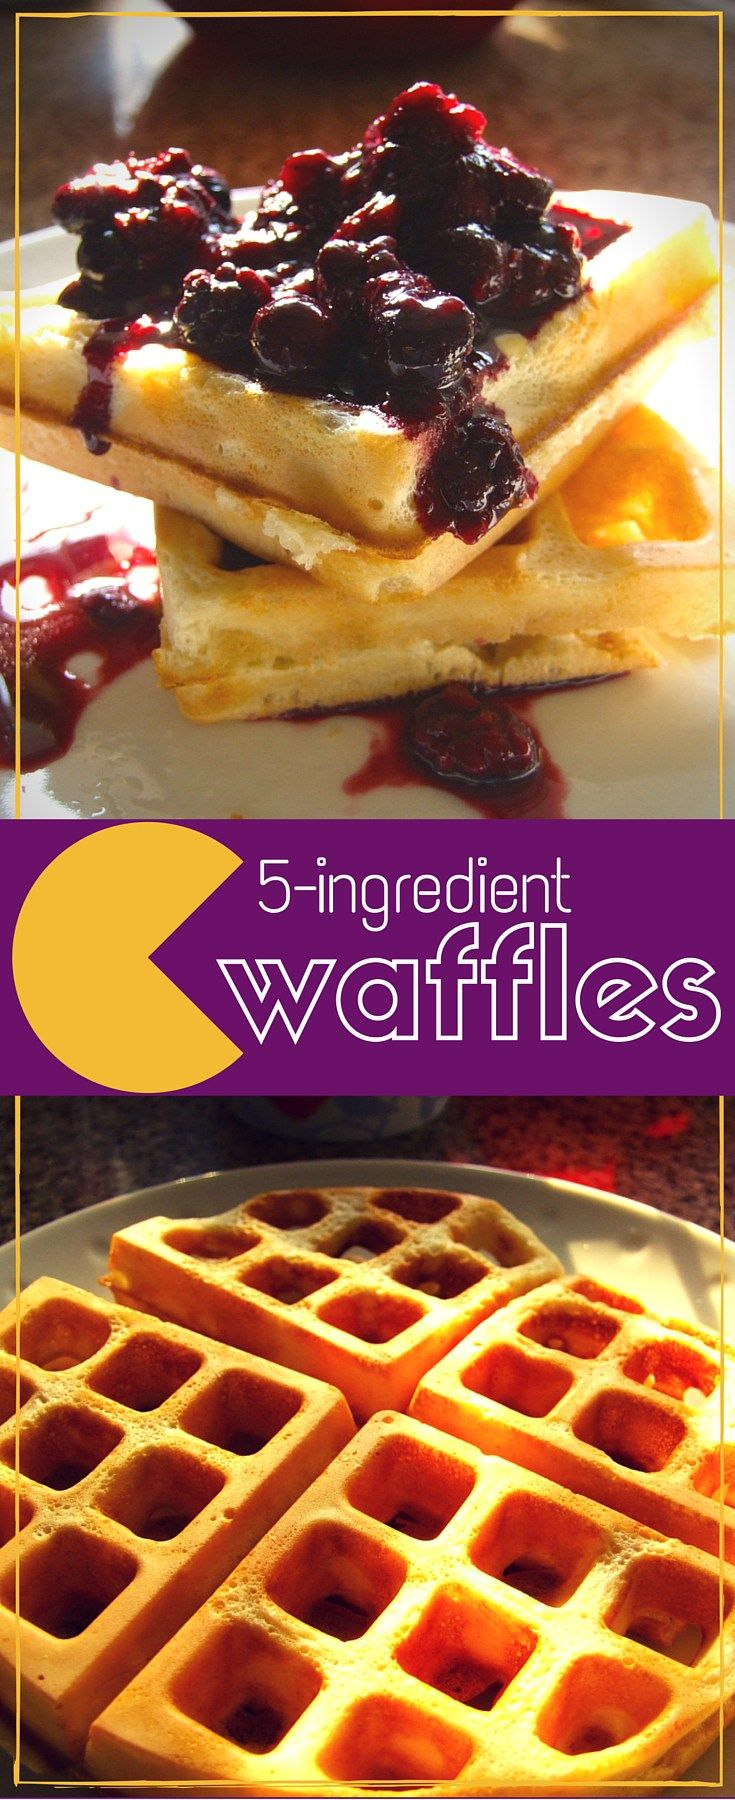 Delicious crispy waffles from just 5 basic ingredients. Perfect for sweet or savoury toppings like fruit, syrup, cheese or ice-cream. Yum!